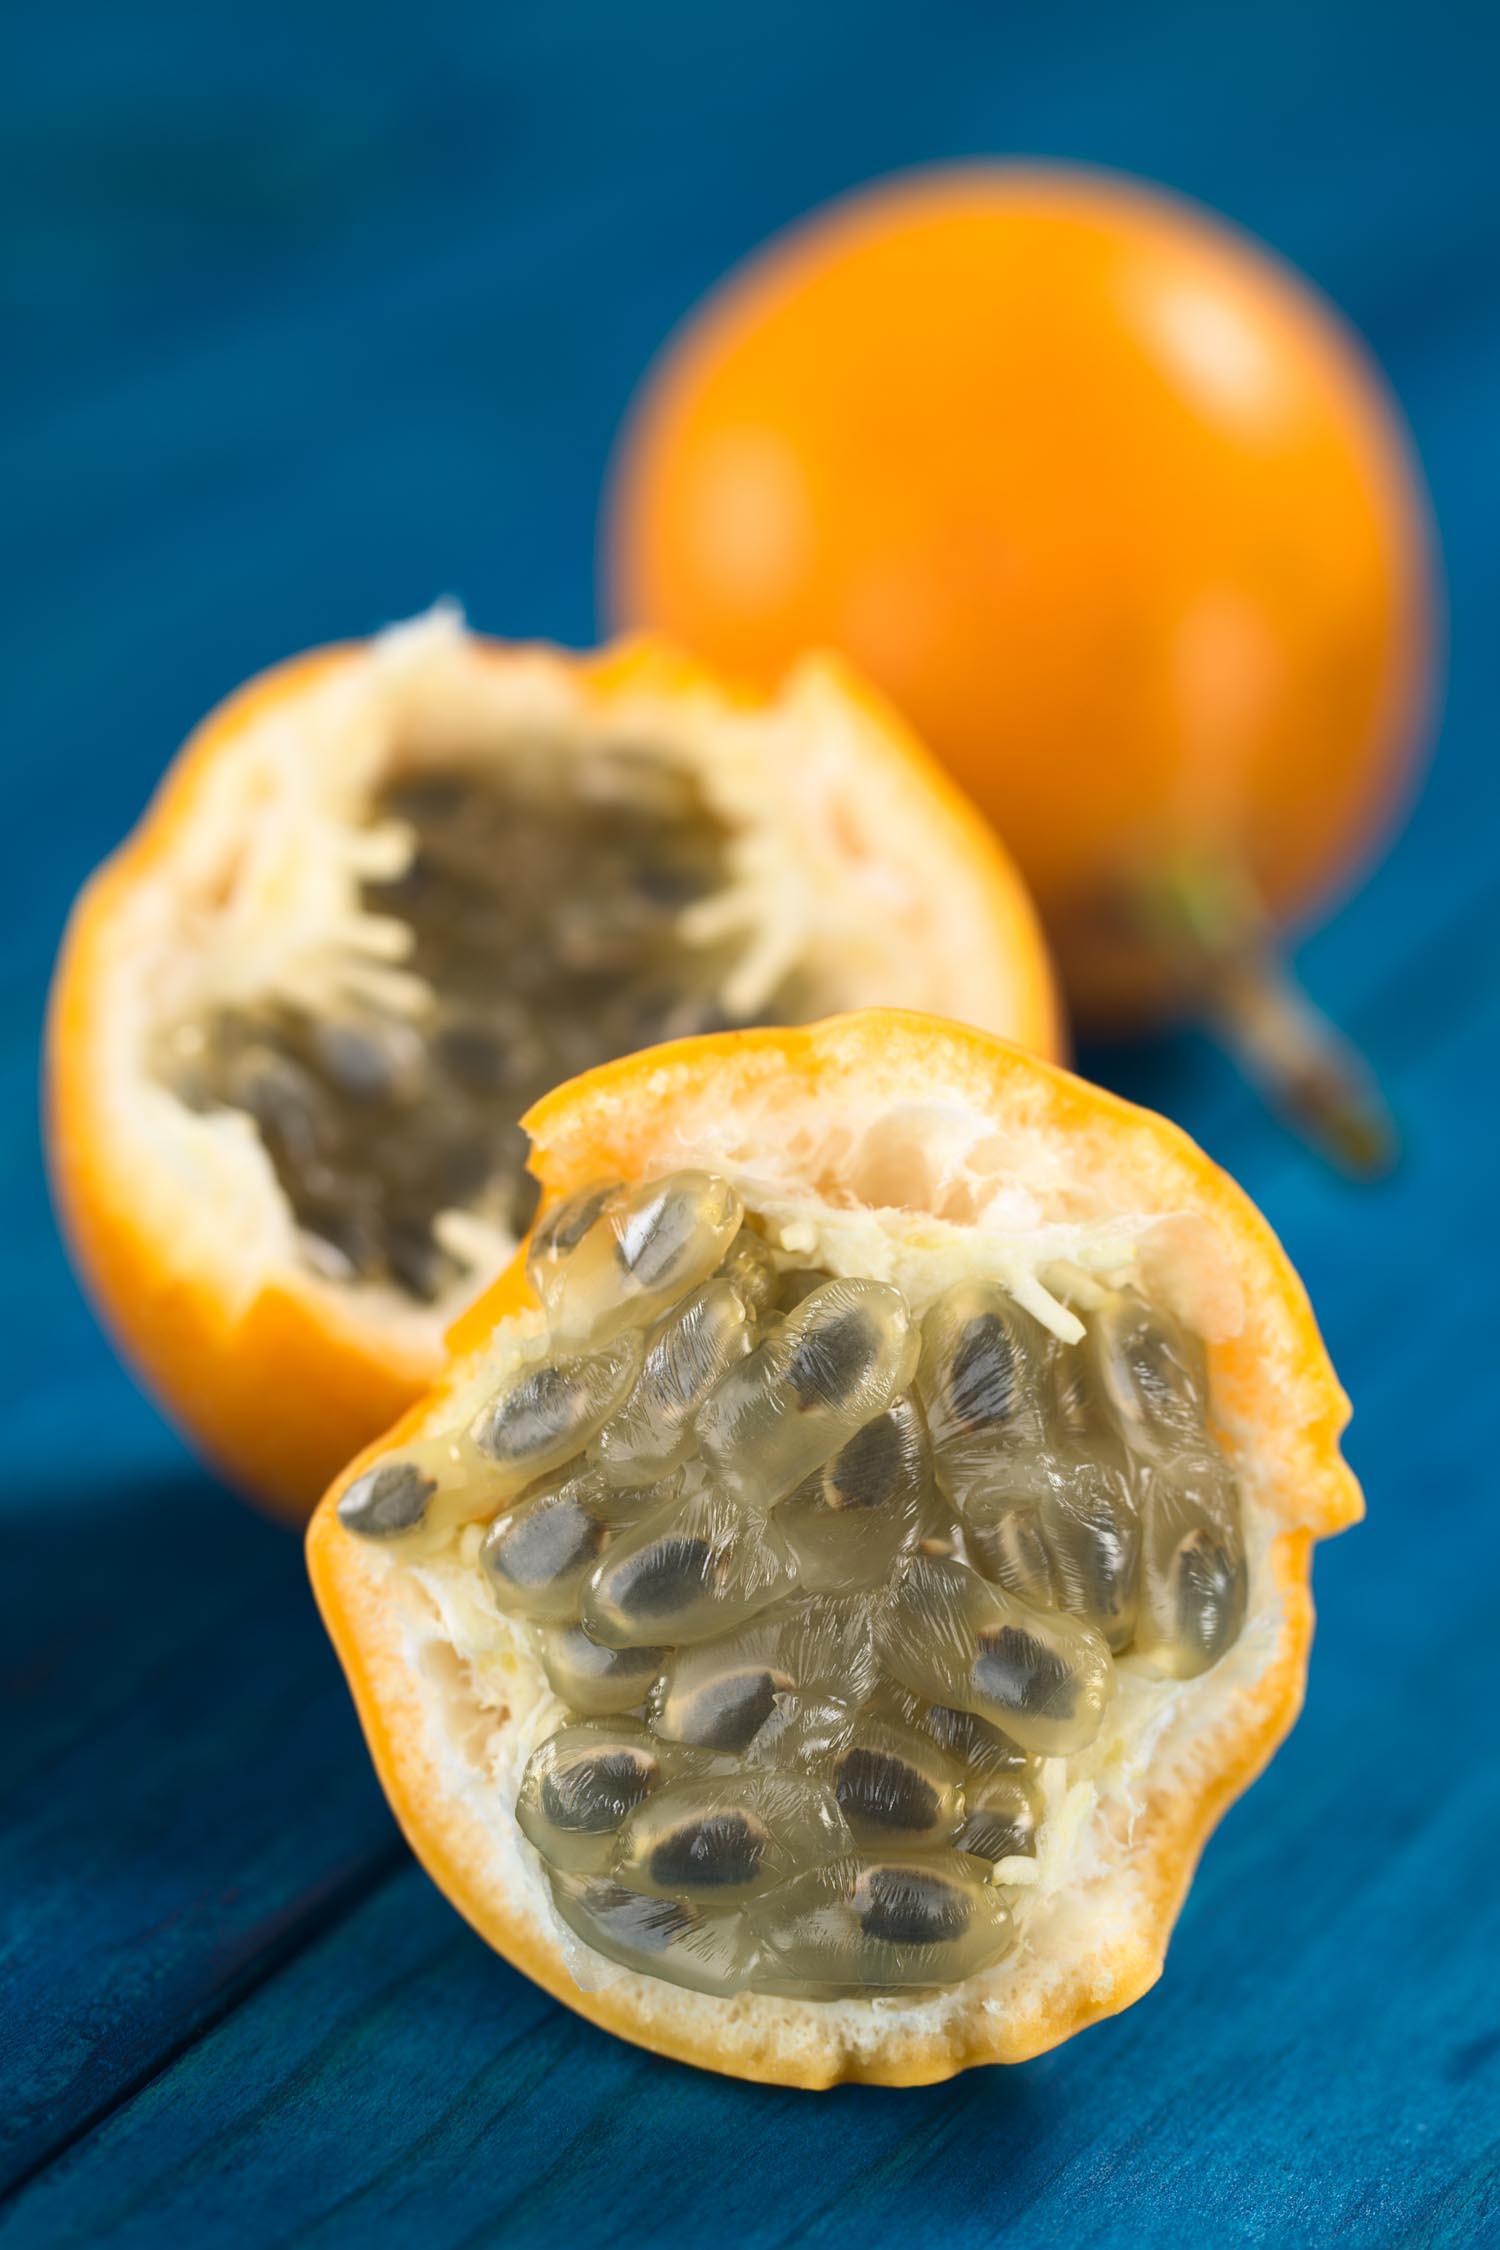 Peru fruit sweet granadilla or grenadia (lat. Passiflora ligularis) fruit cut in half of which the seeds and the surrounding juicy pulp is eaten or is used to prepare juice